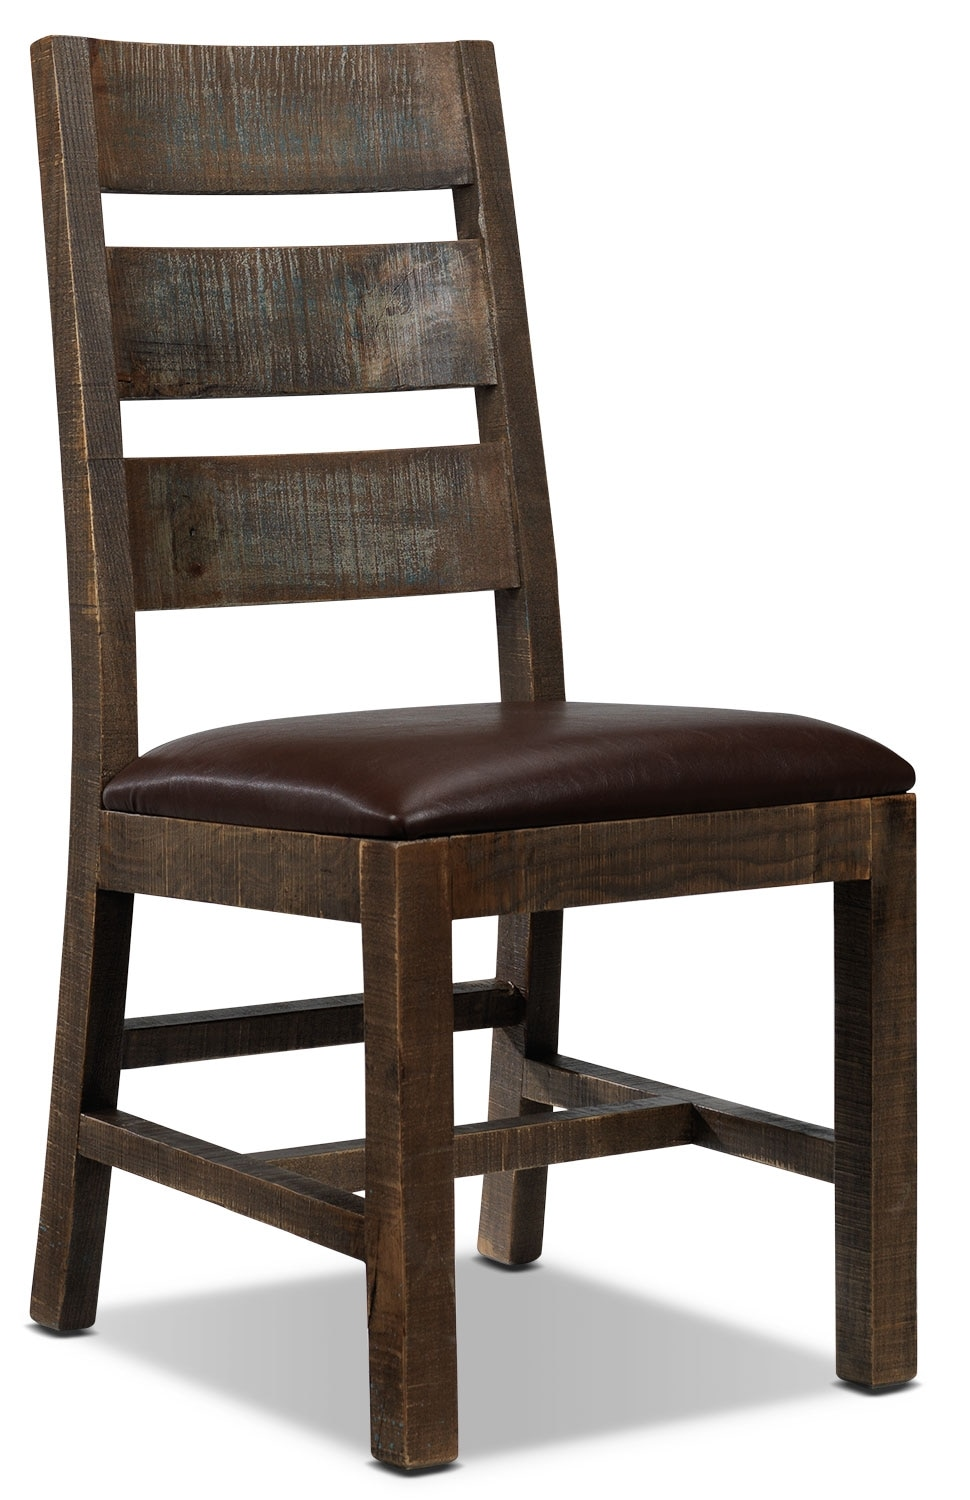 Dining Room Furniture - Urban Splendor Side Chair